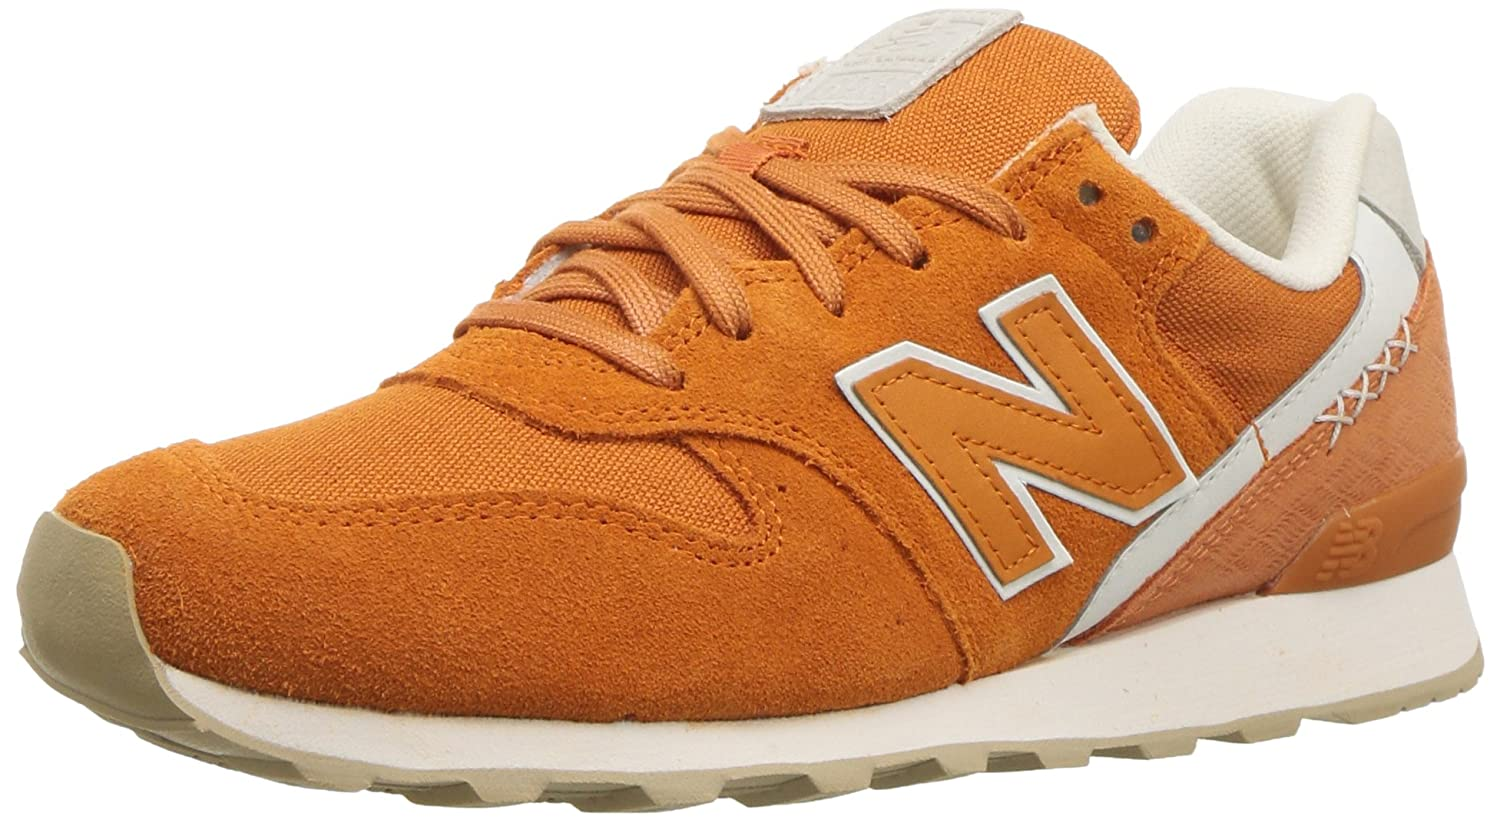 New Balance Women's 696 v1 Sneaker B0751GMFWL 12 B(M) US|Vintage Orange/Sea Salt